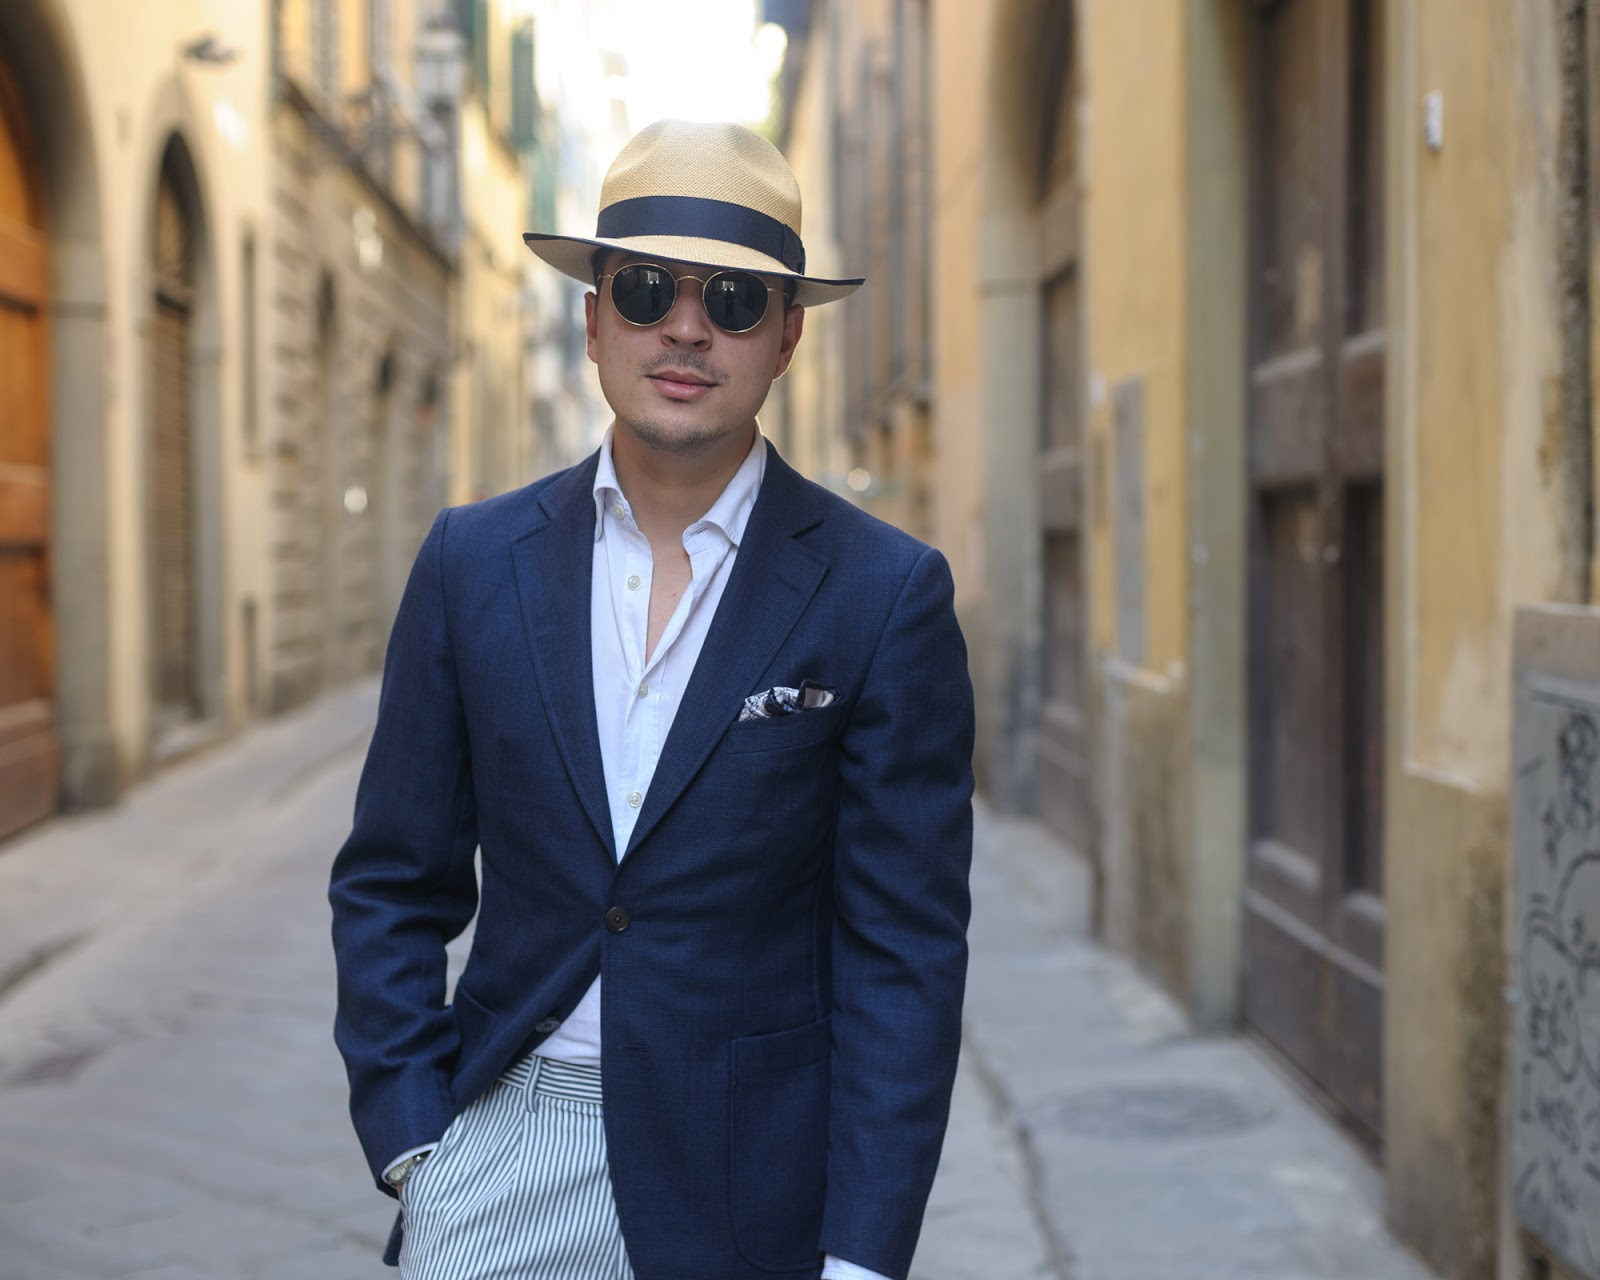 Lana Fresco, Navy SportCoat, Herringbone Australia, Uniqlo Chinos, Crockett & Jones Loafers, Christys' Hats, Orient Star, Ray-ban